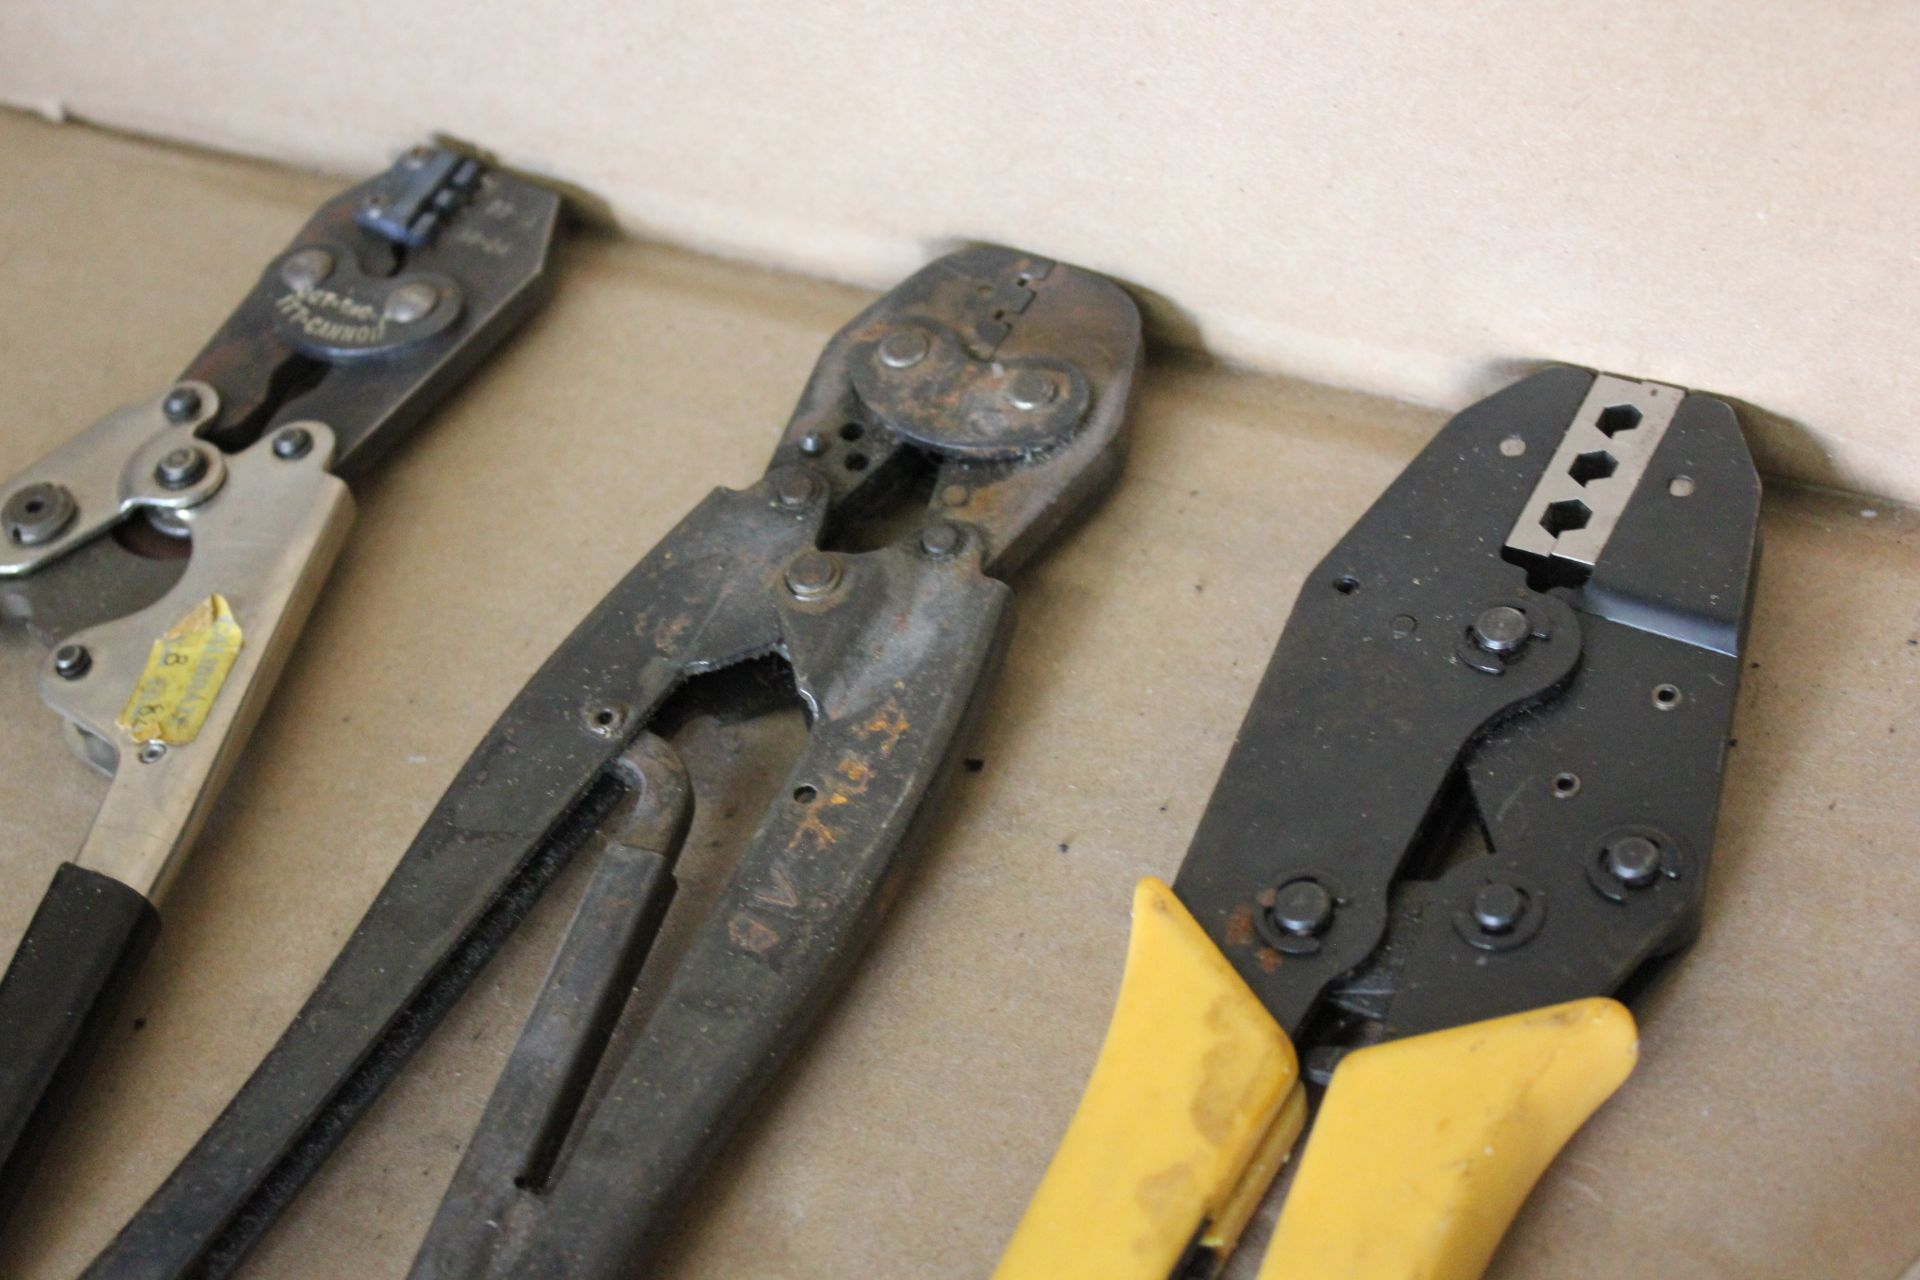 LOT OF HAND CRIMPER TOOLS - Image 5 of 8